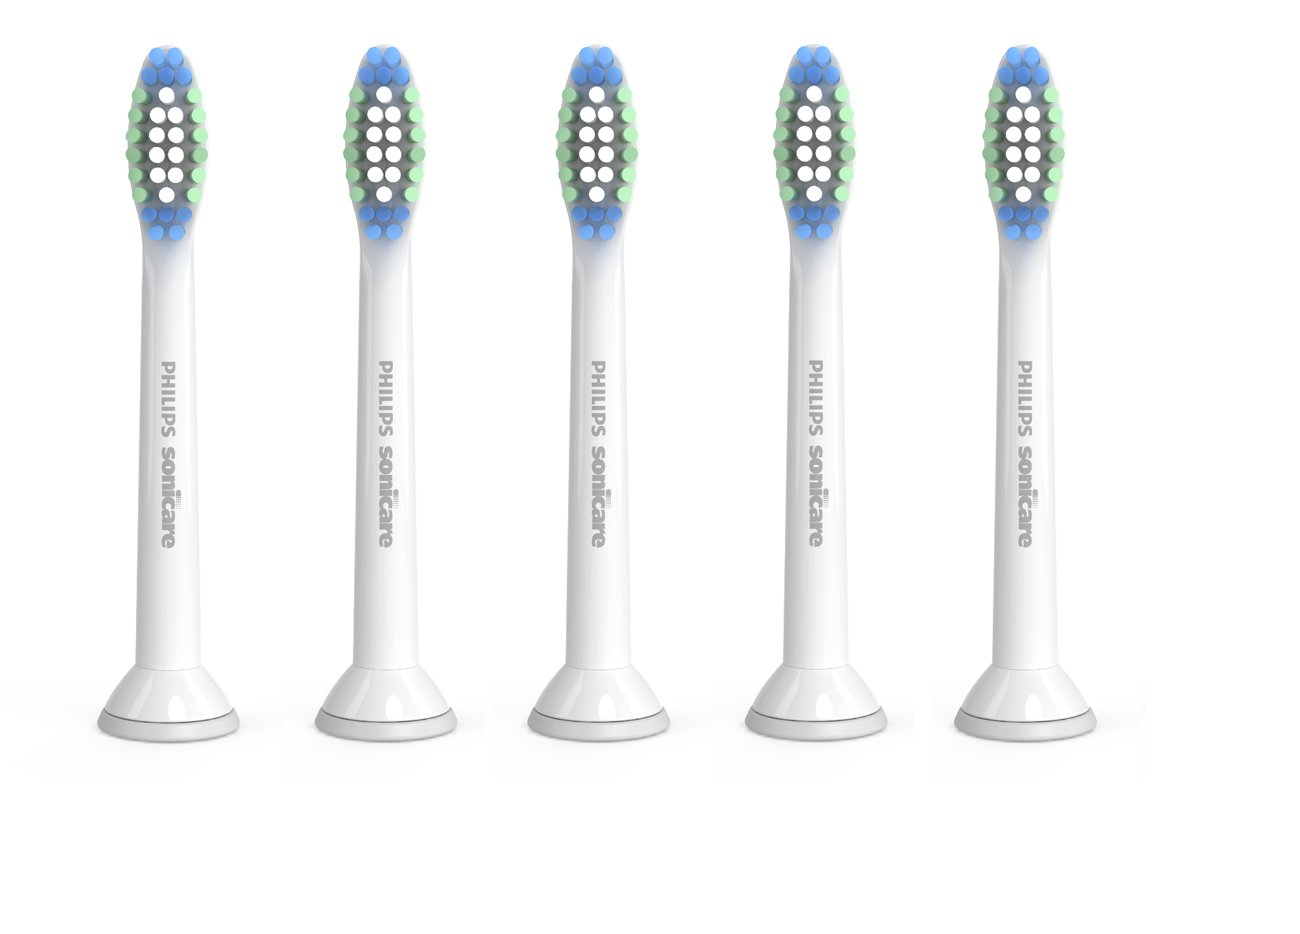 Genuine Philips Sonicare Simply Clean Replacement Toothbrush Heads, 5 Pack, HX6015/03 by Philips Sonicare